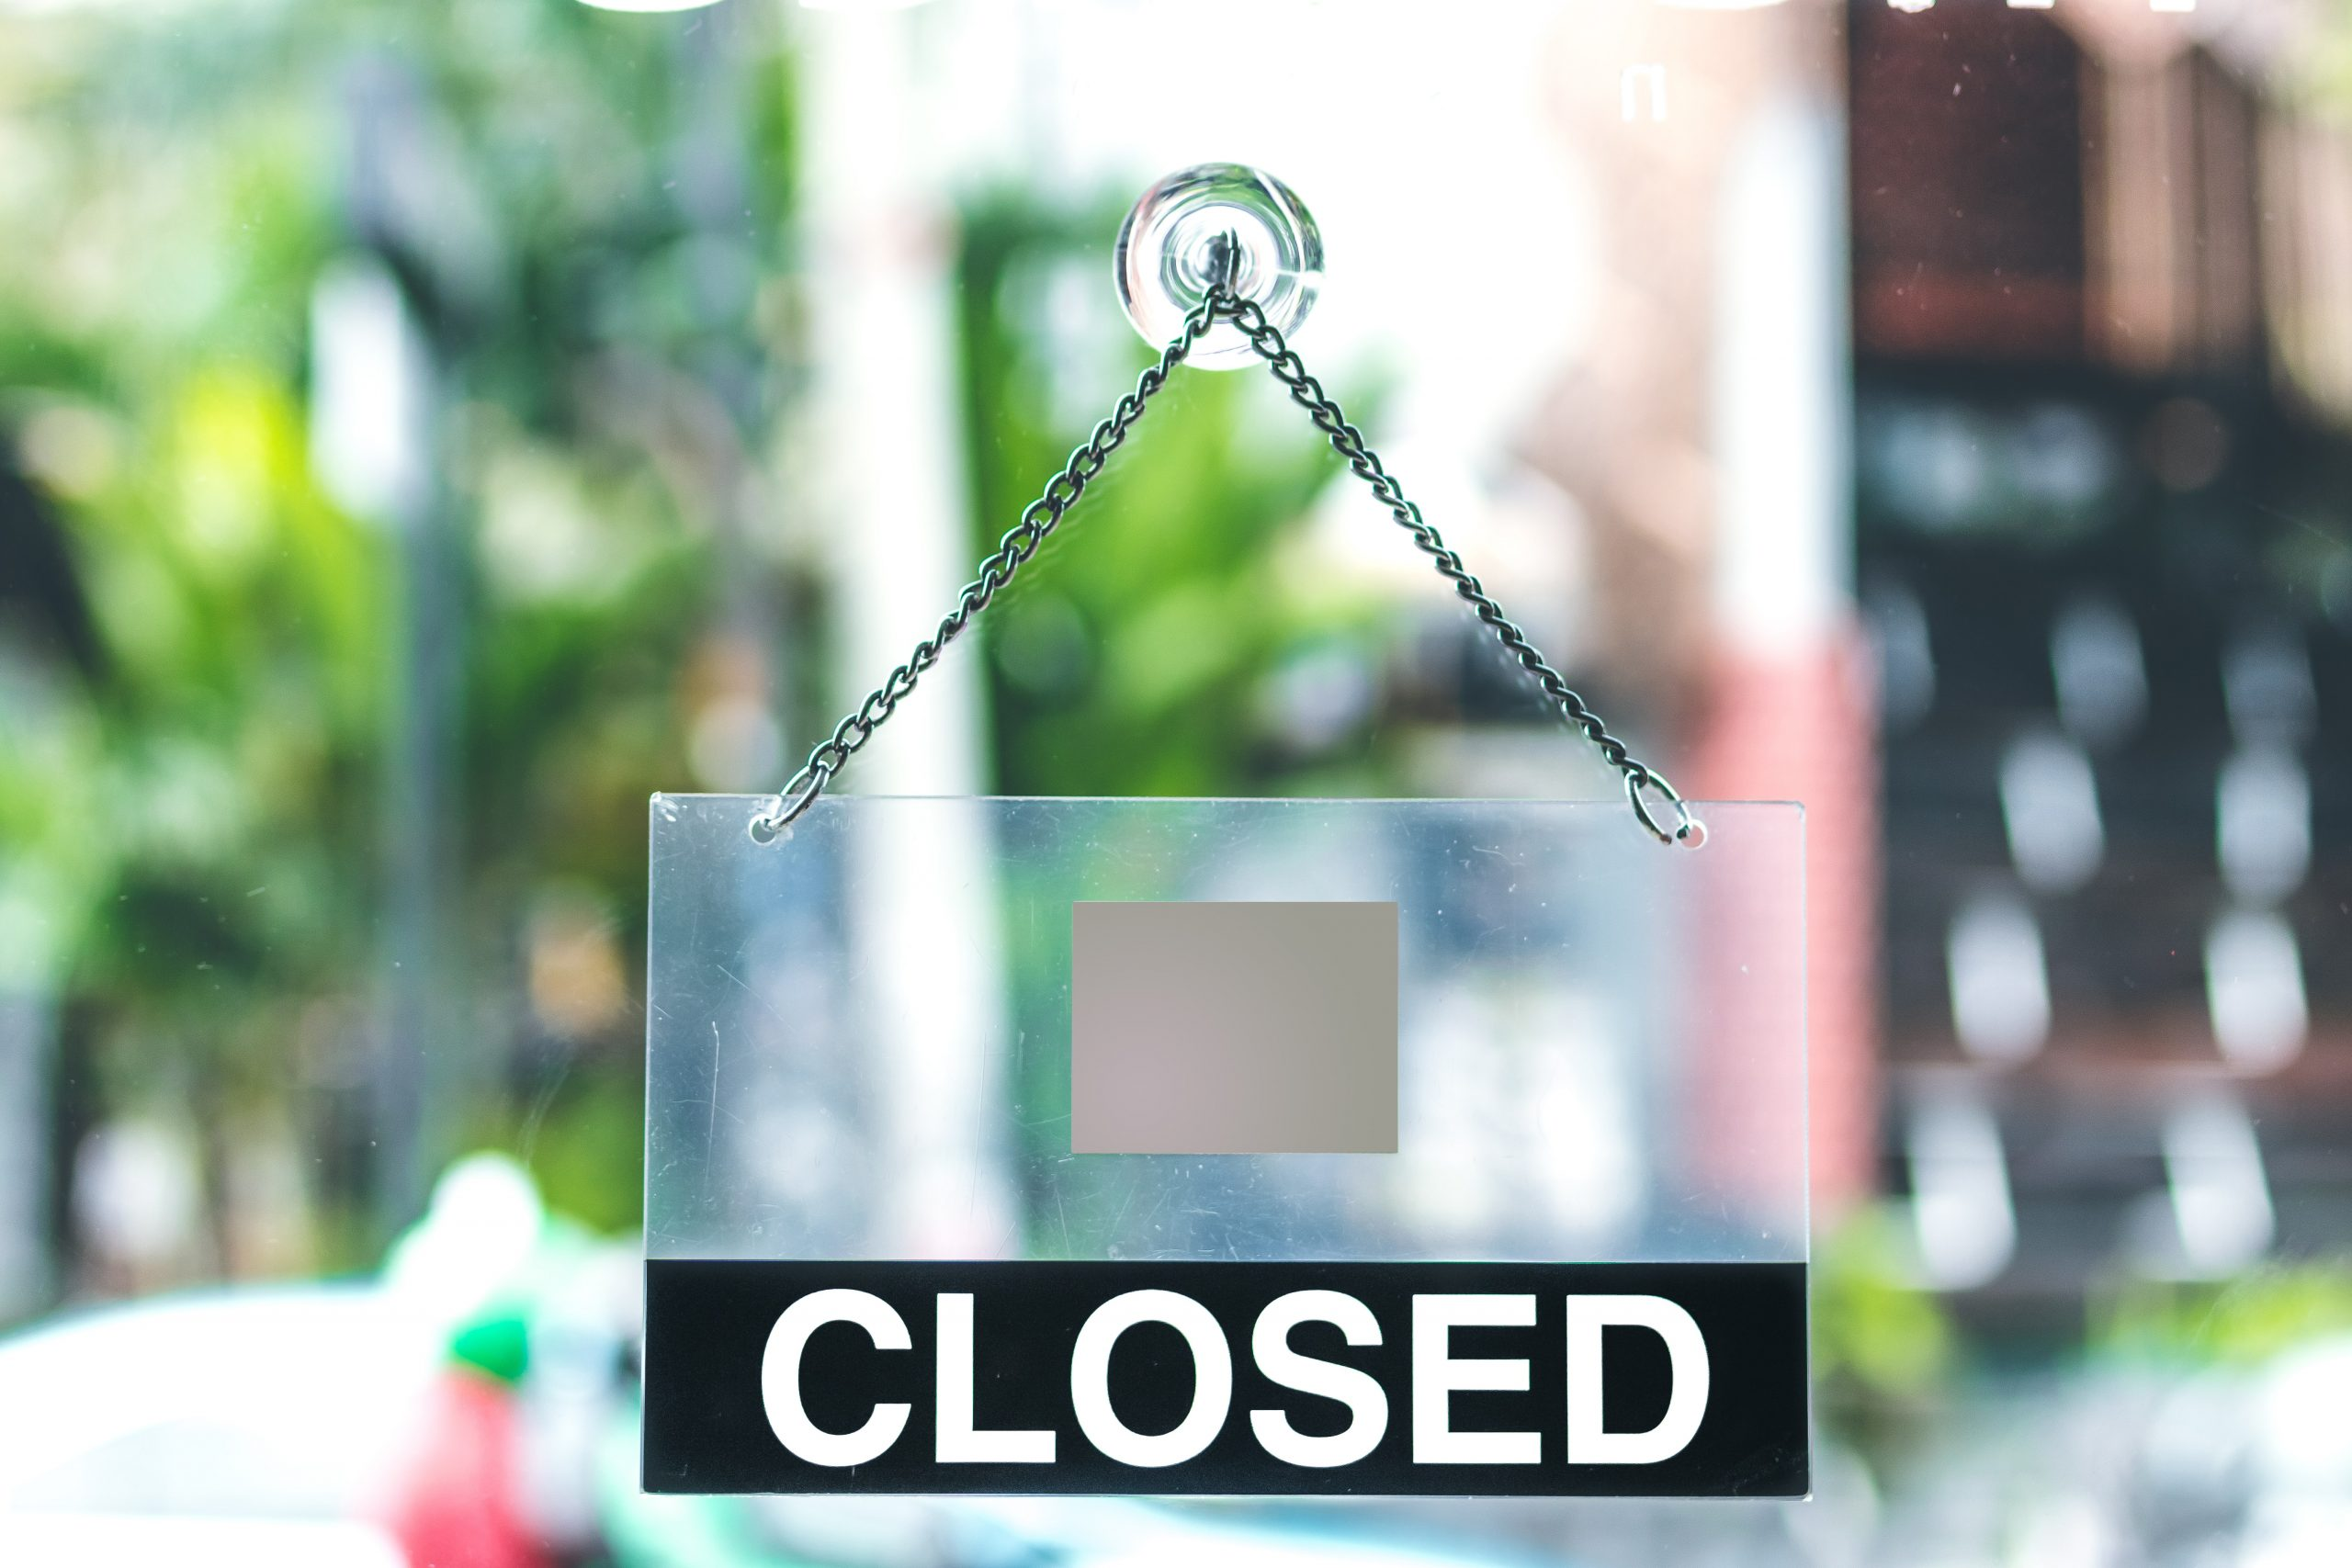 Closed sign on frosted glass door: Photo by Artem Beliaikin on Unsplash